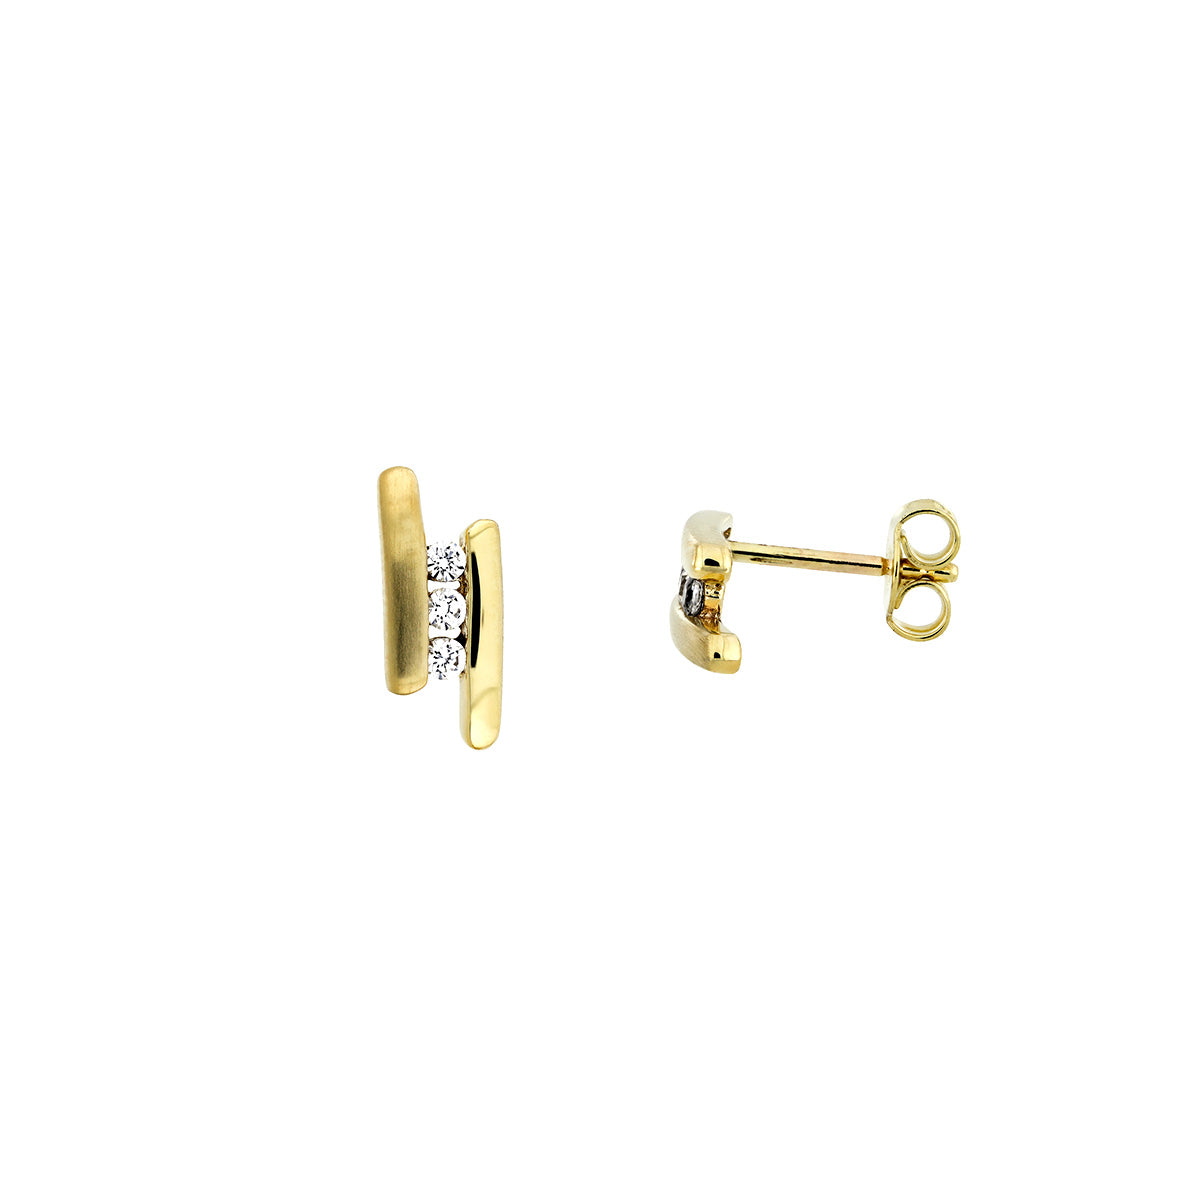 Gold Satin & Polished Bars Studs